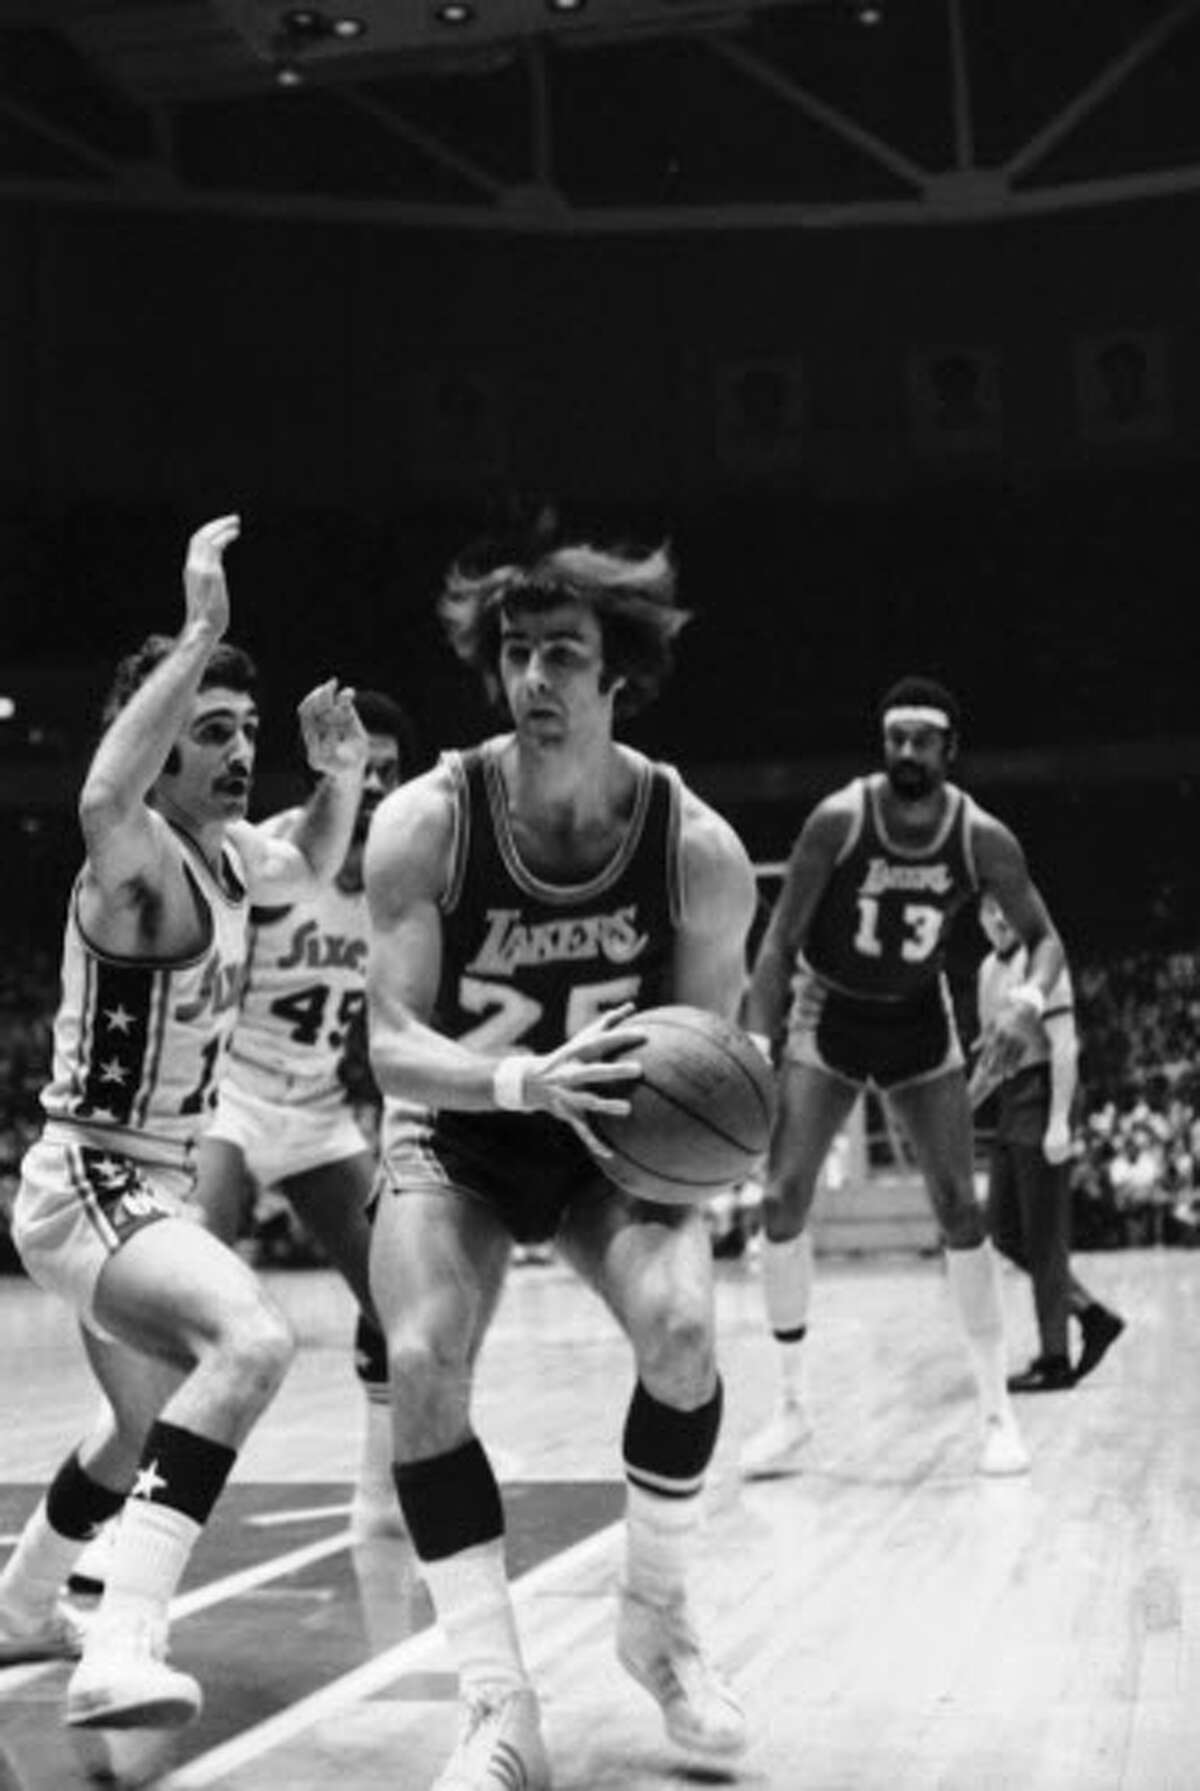 1971-72 Los Angeles Lakers 69-13 A season that would stand as the NBA's pinnacle for more than two decades until Michael Jordan reached an unimaginable peak. The 71-72 Lakers rattled off 33 consecutive regular-season victories from Nov. 5 to Jan. 7, a record still untouched. Built around three aging Hall of Famers- Chamberlain was 35, Jerry West was 33, Elgin Baylor was 37- and one in-his-prime scoring machine named Gail Goodrich, coach Bill Sharman's Lakers were a wrecking ball. After dropping Game 1 of the Finals to the New York Knicks, the Lakers won out, capping the season with a 114-100 win in Game 5.